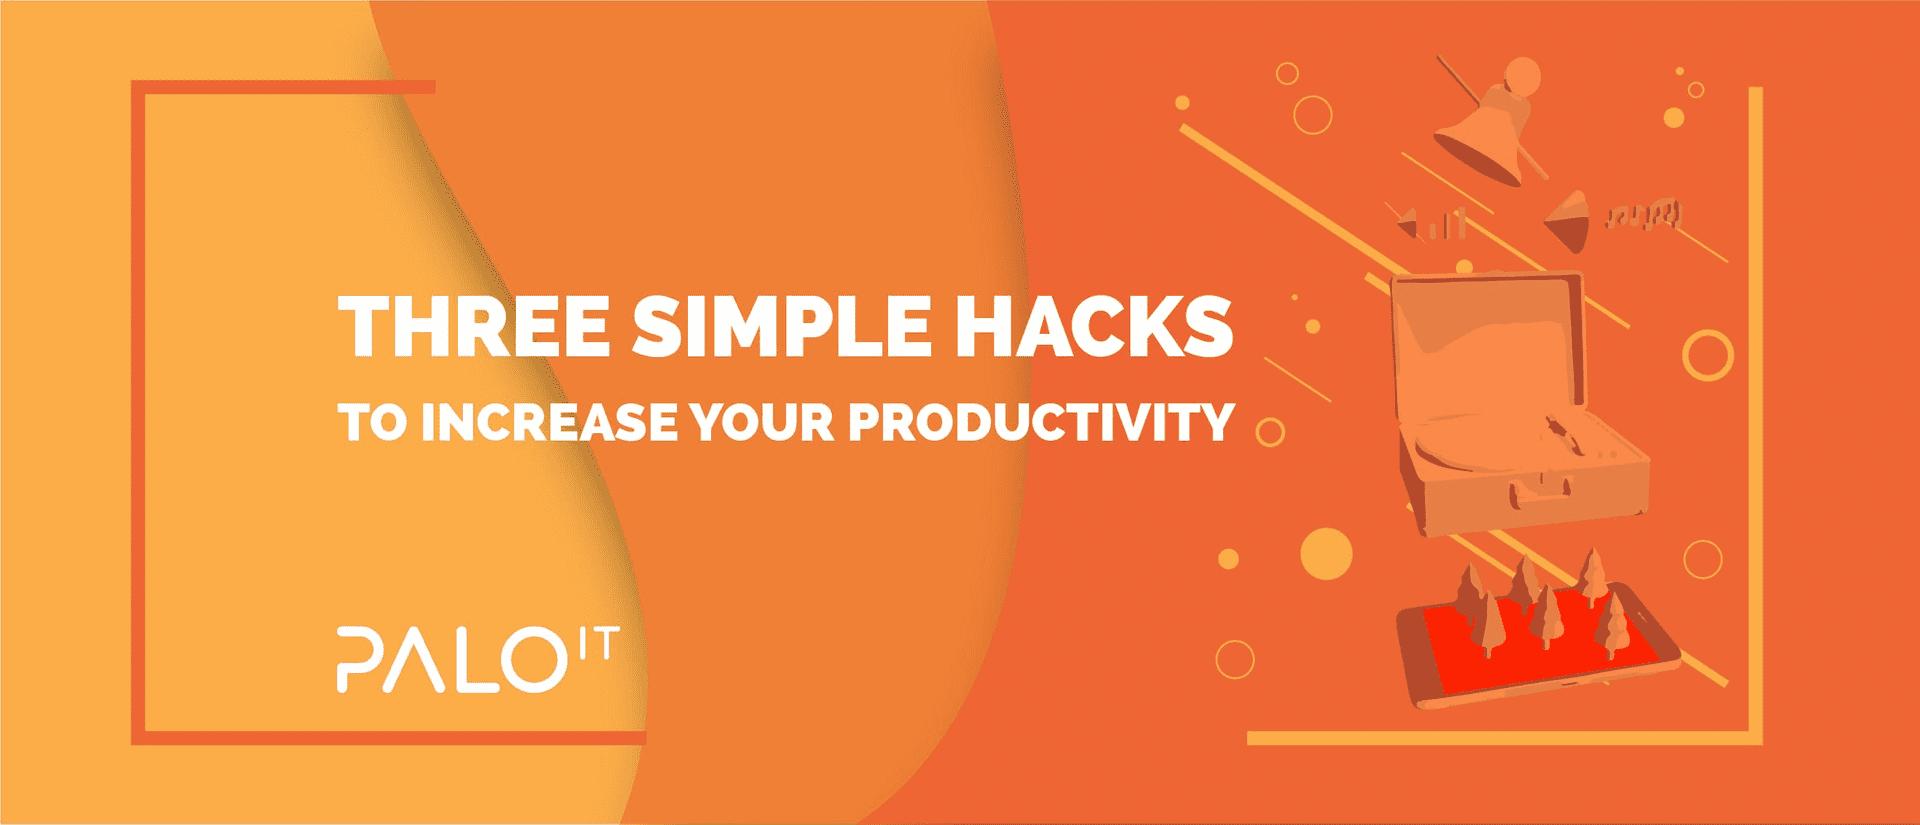 Three Simple Hacks to Increase Your Productivity